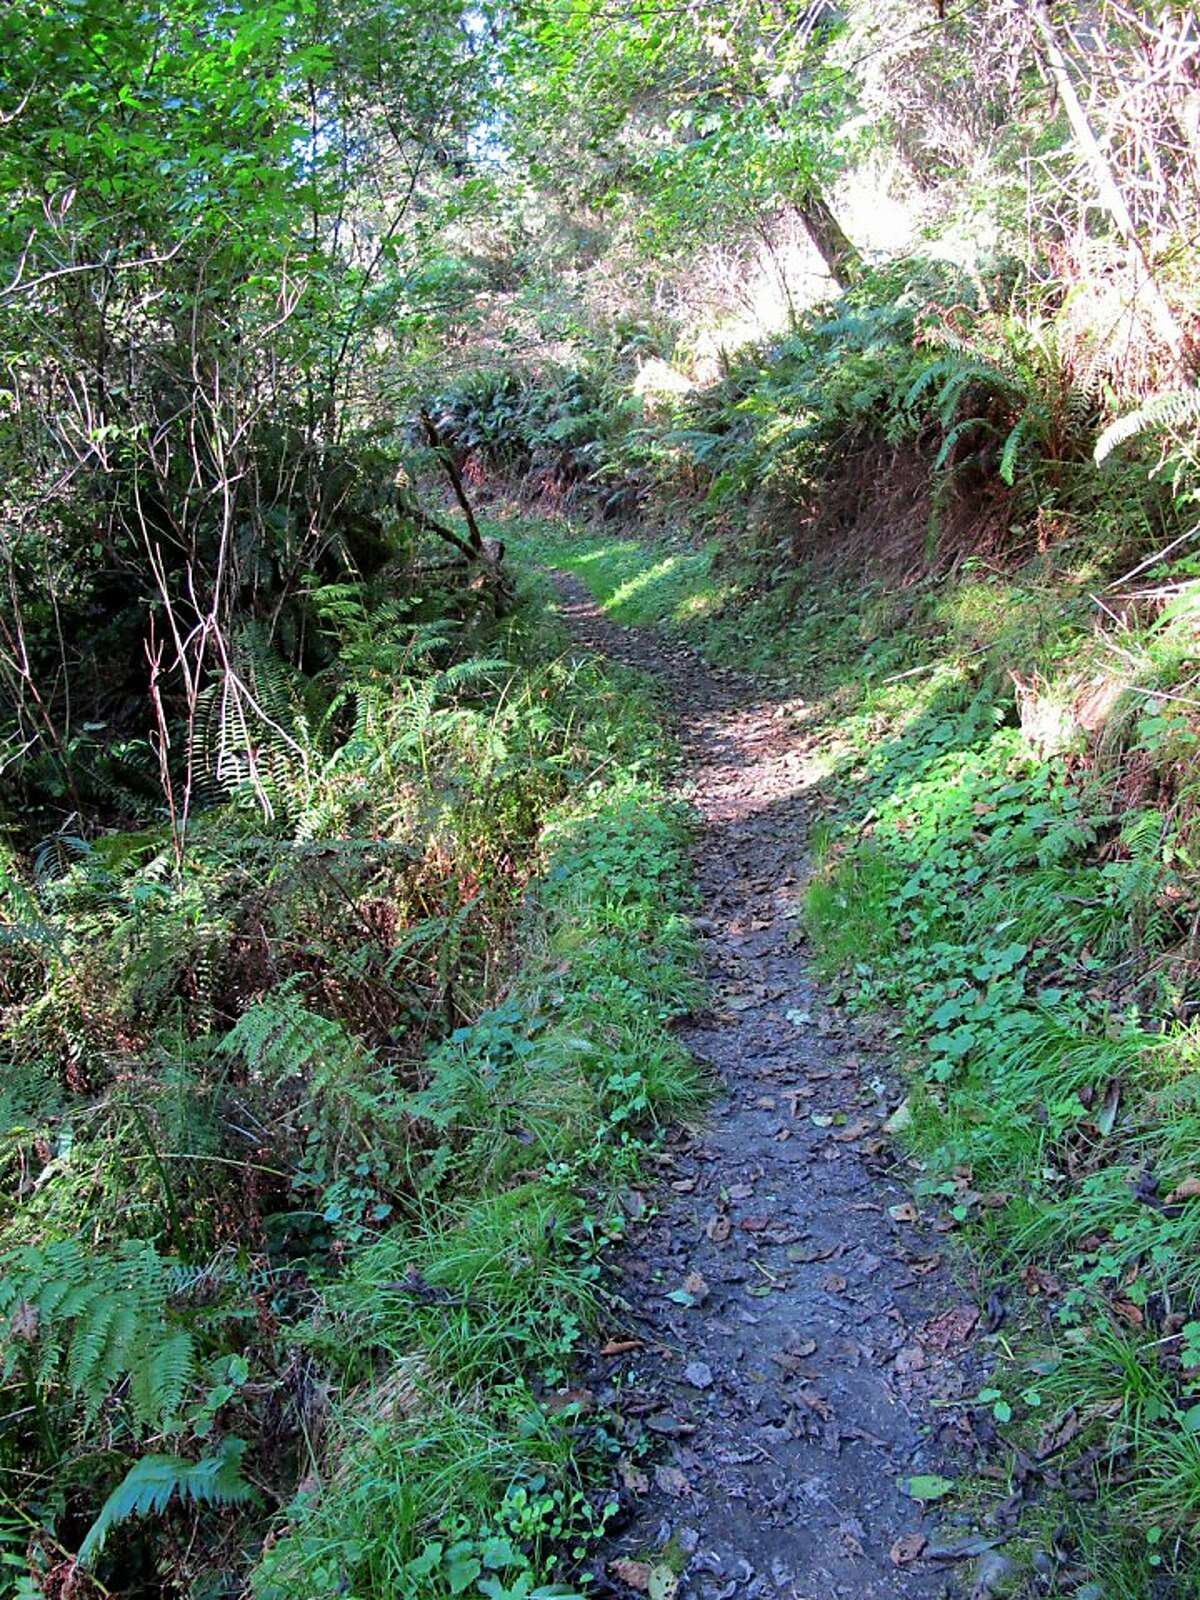 The Coastal Trail at Prairie Creek Redwoods runs in and out of alder and spruce forests north to Ossagon Rock. Photo: Michael Furniss